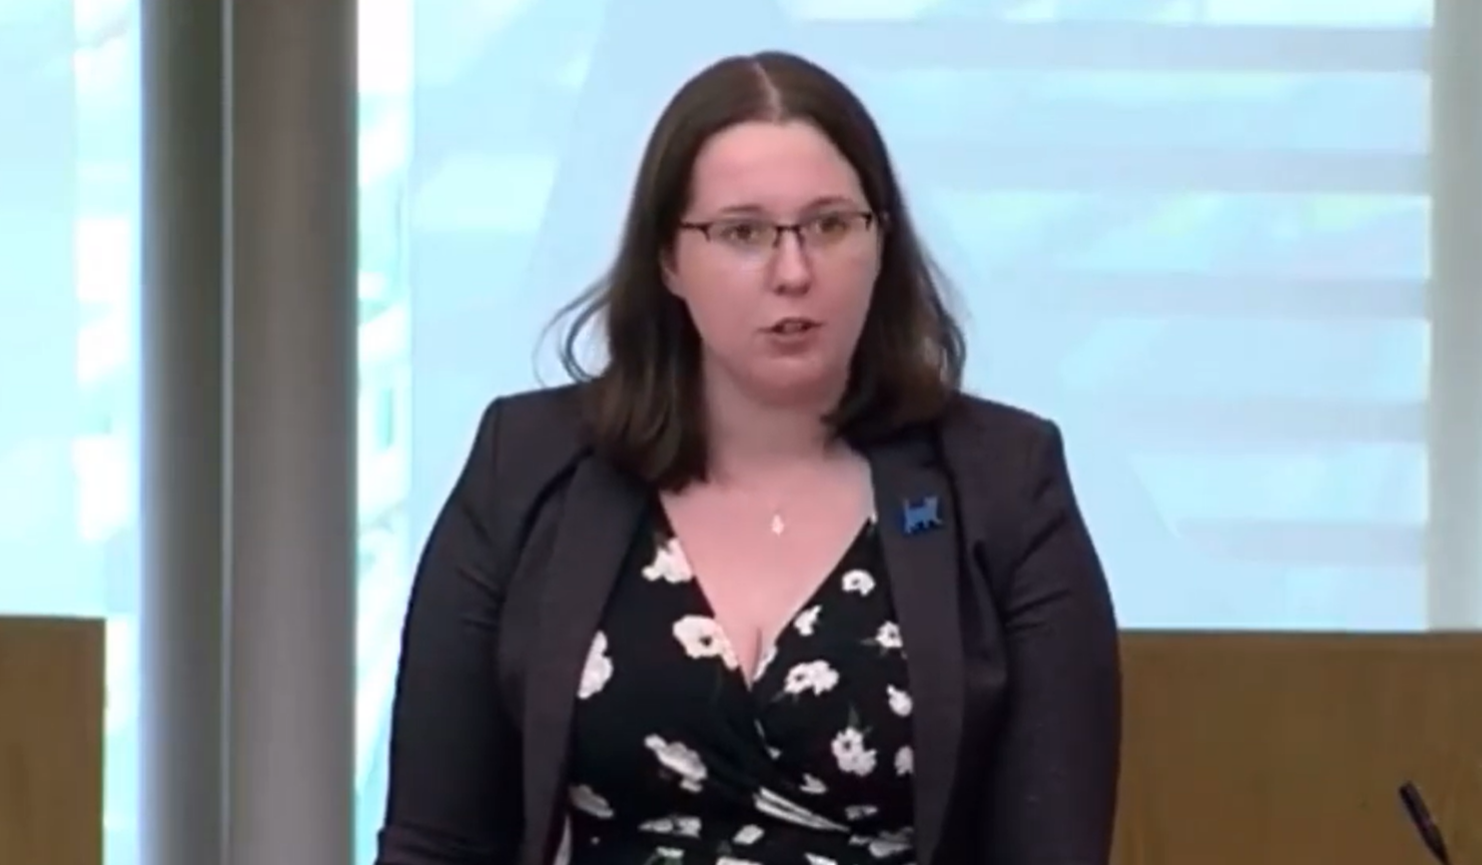 Still from a video in the Scottish Parliament debating chamber. Emma Roddick, 24yo in a black dress and grey blazer with a small blue cat pin, wearing glasses, speaks to someone off-camera.